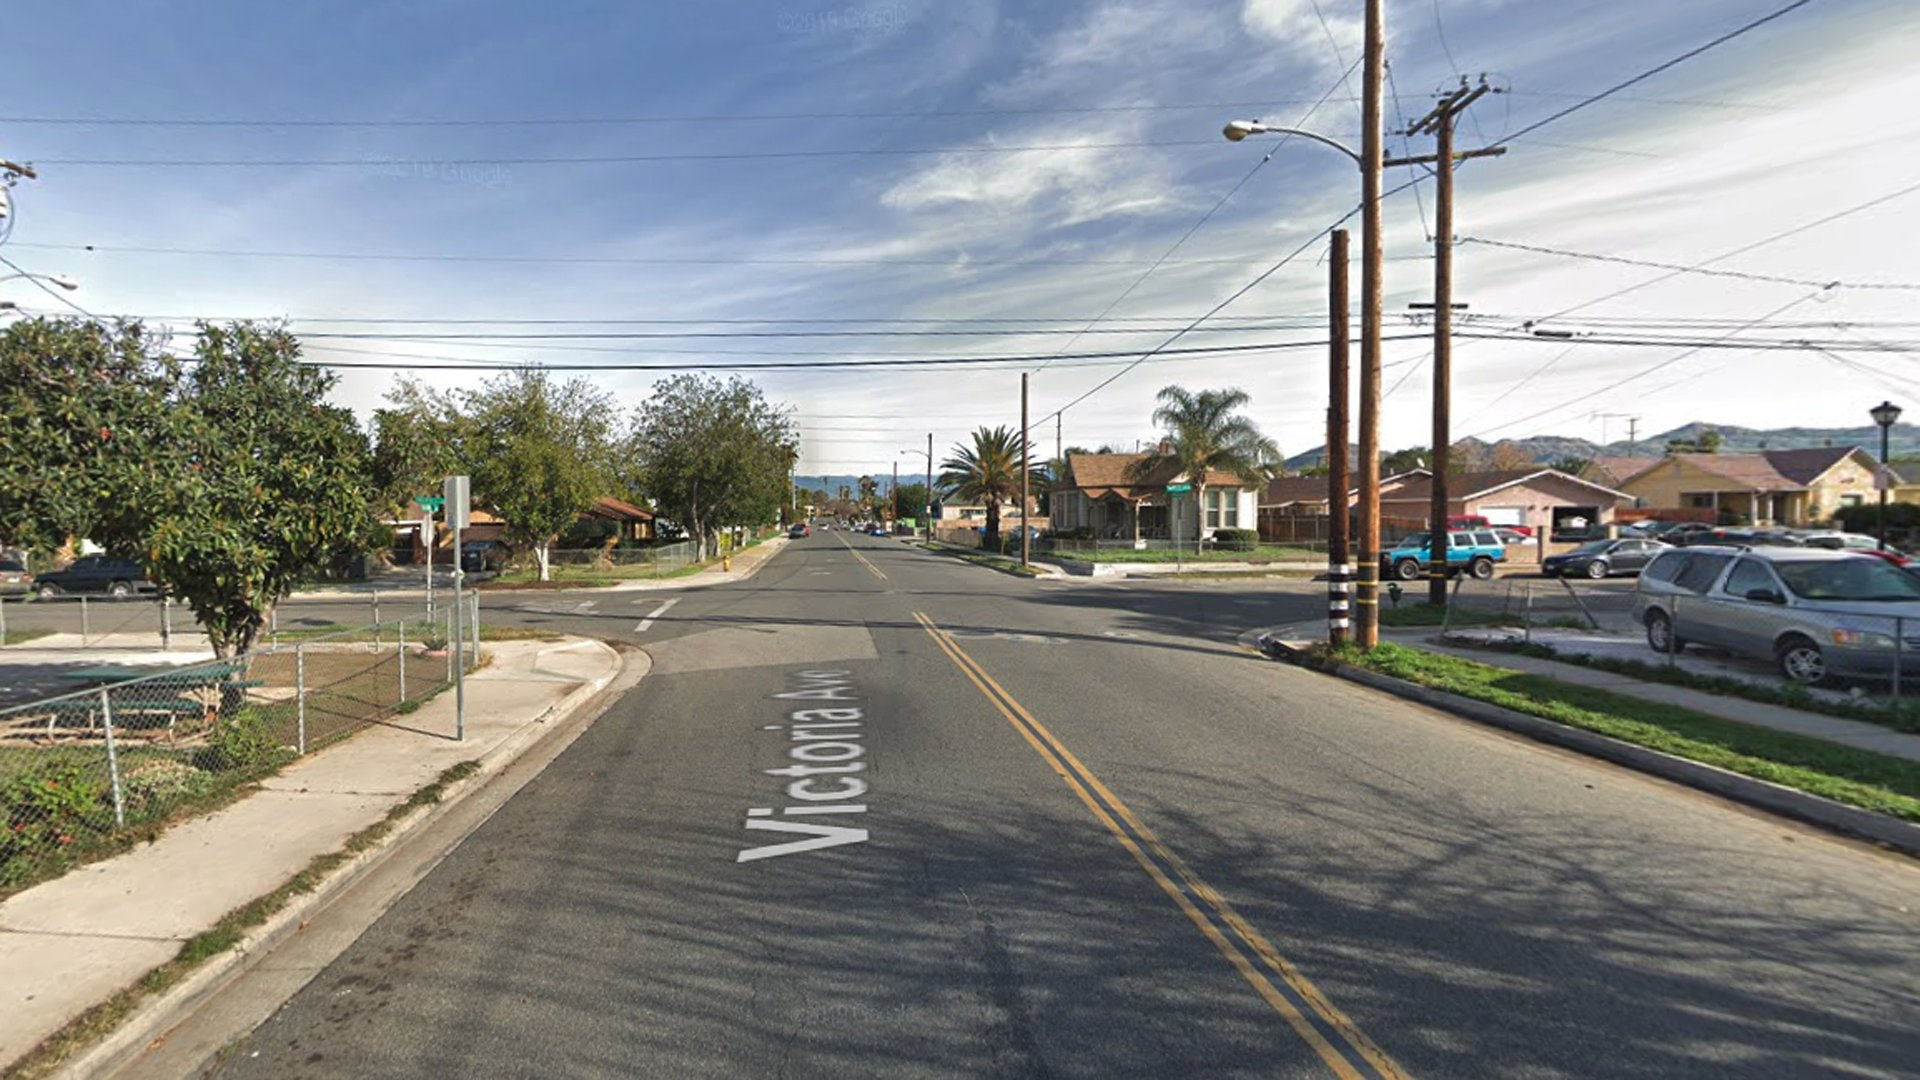 The intersection of Victoria Avenue and 12th Street in Riverside, as pictured in a Google Street View image.